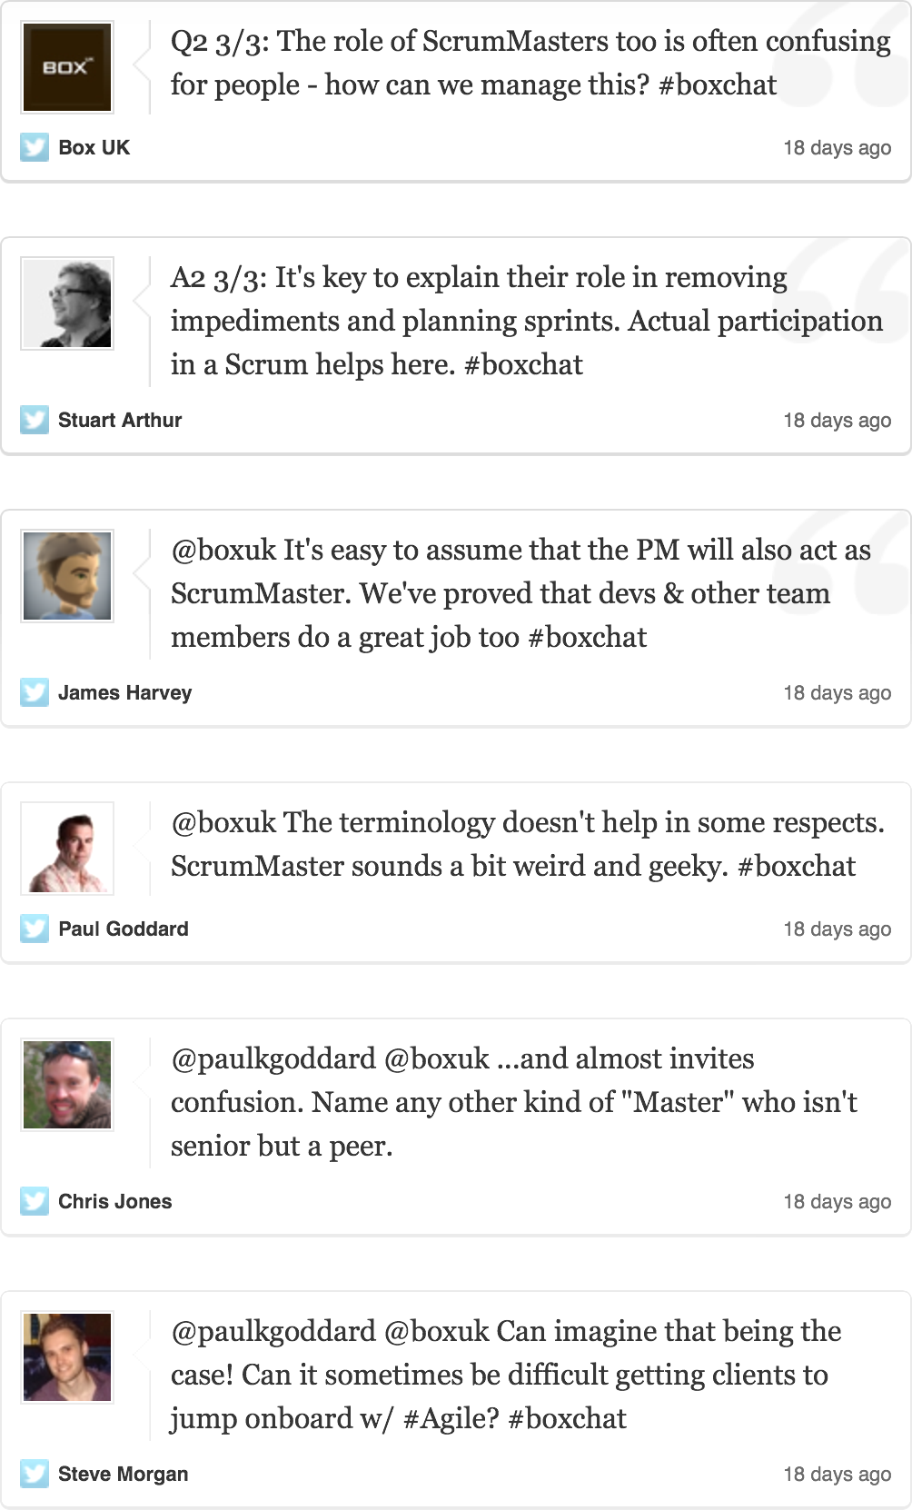 Twitter chat - Role of ScrumMaster